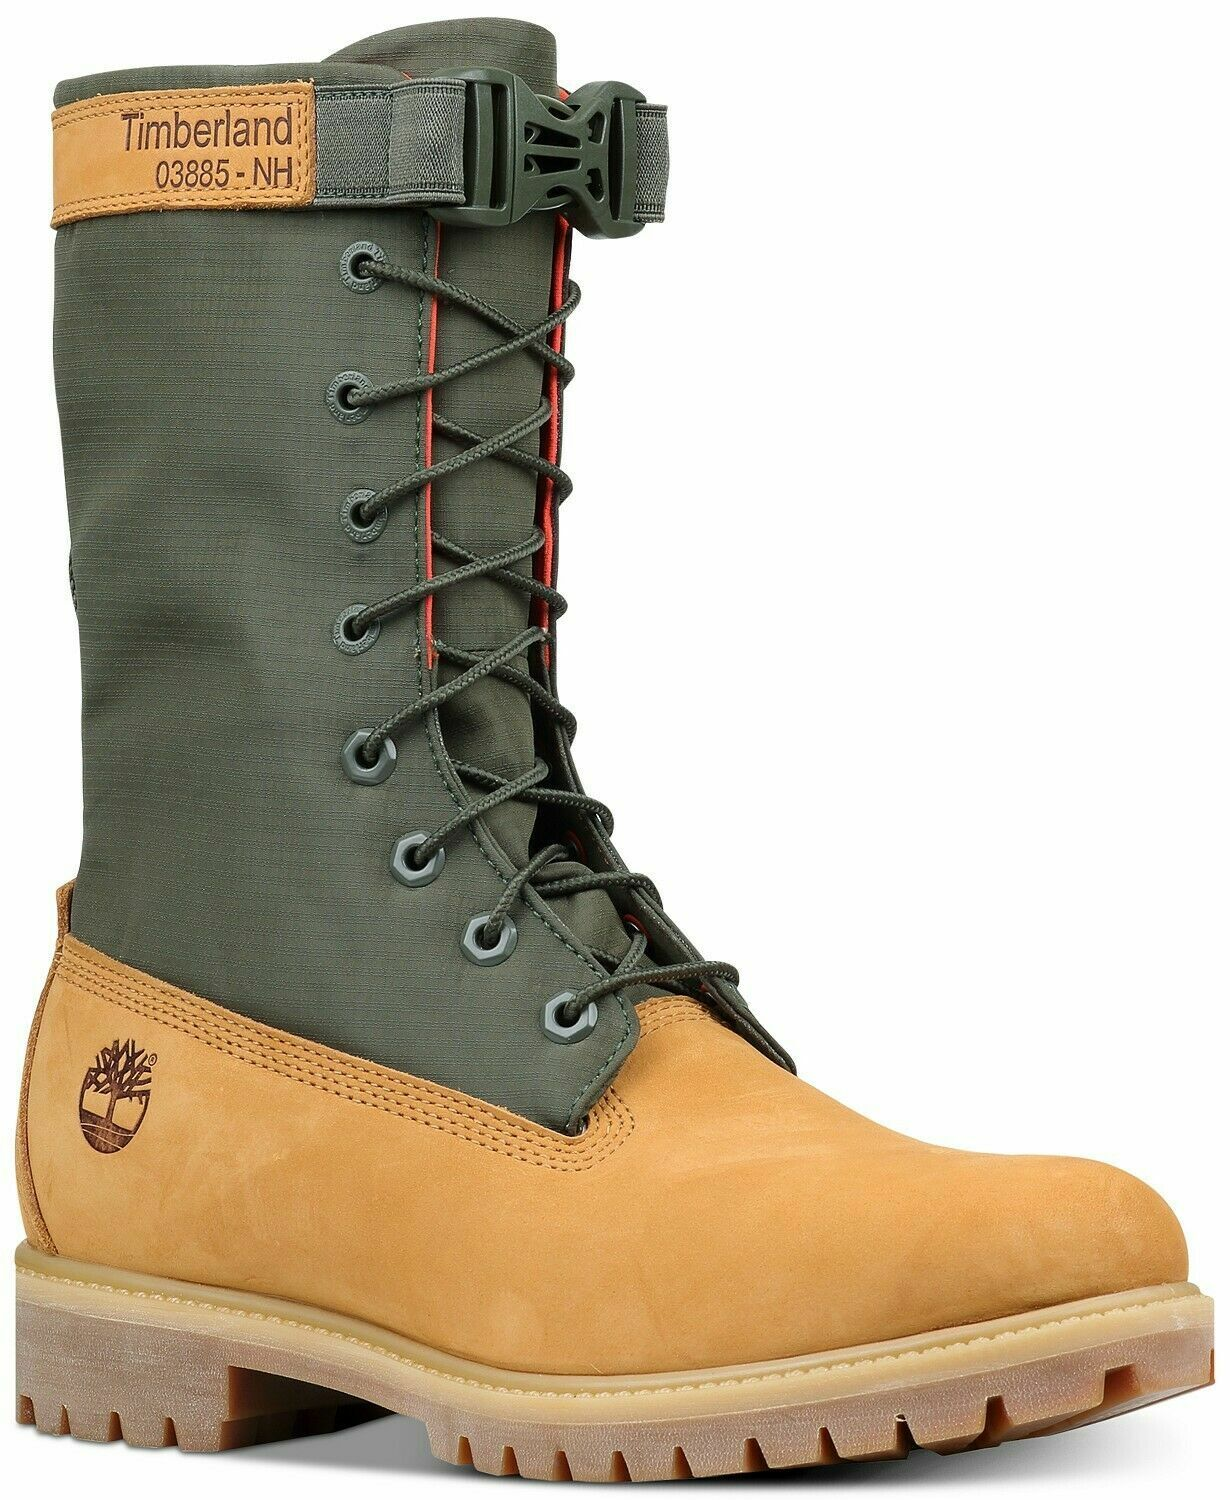 Motel Cortar Galleta  Timberland 6 Inch Premium Leather BOOTS Winter Celtic Green Limited Release  NWB for sale online   eBay